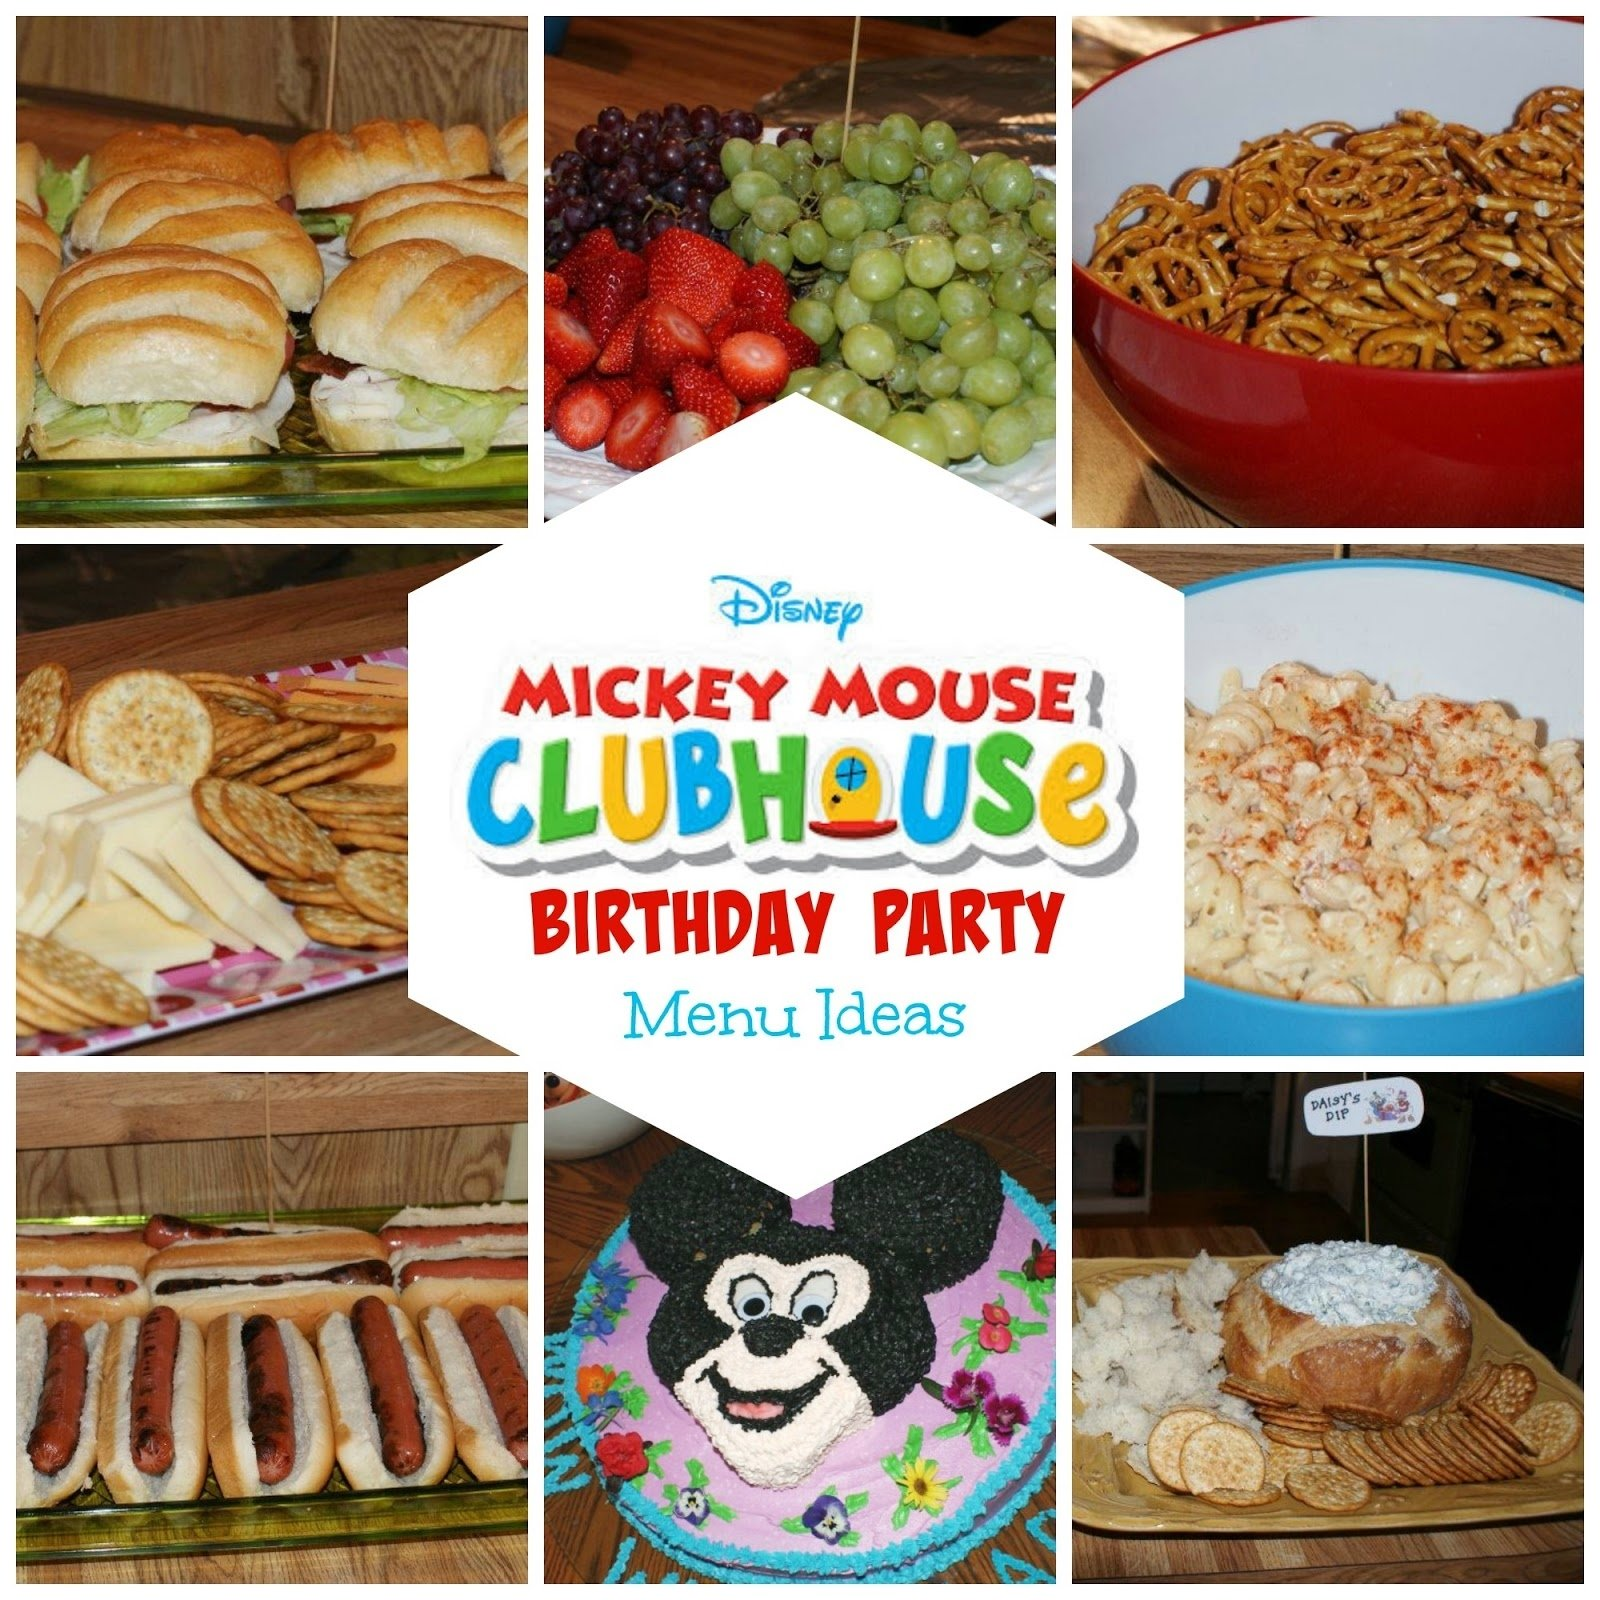 10 Awesome Mickey Mouse Party Food Ideas 8 mickey mouse birthday party menu ideas the two bite club 3